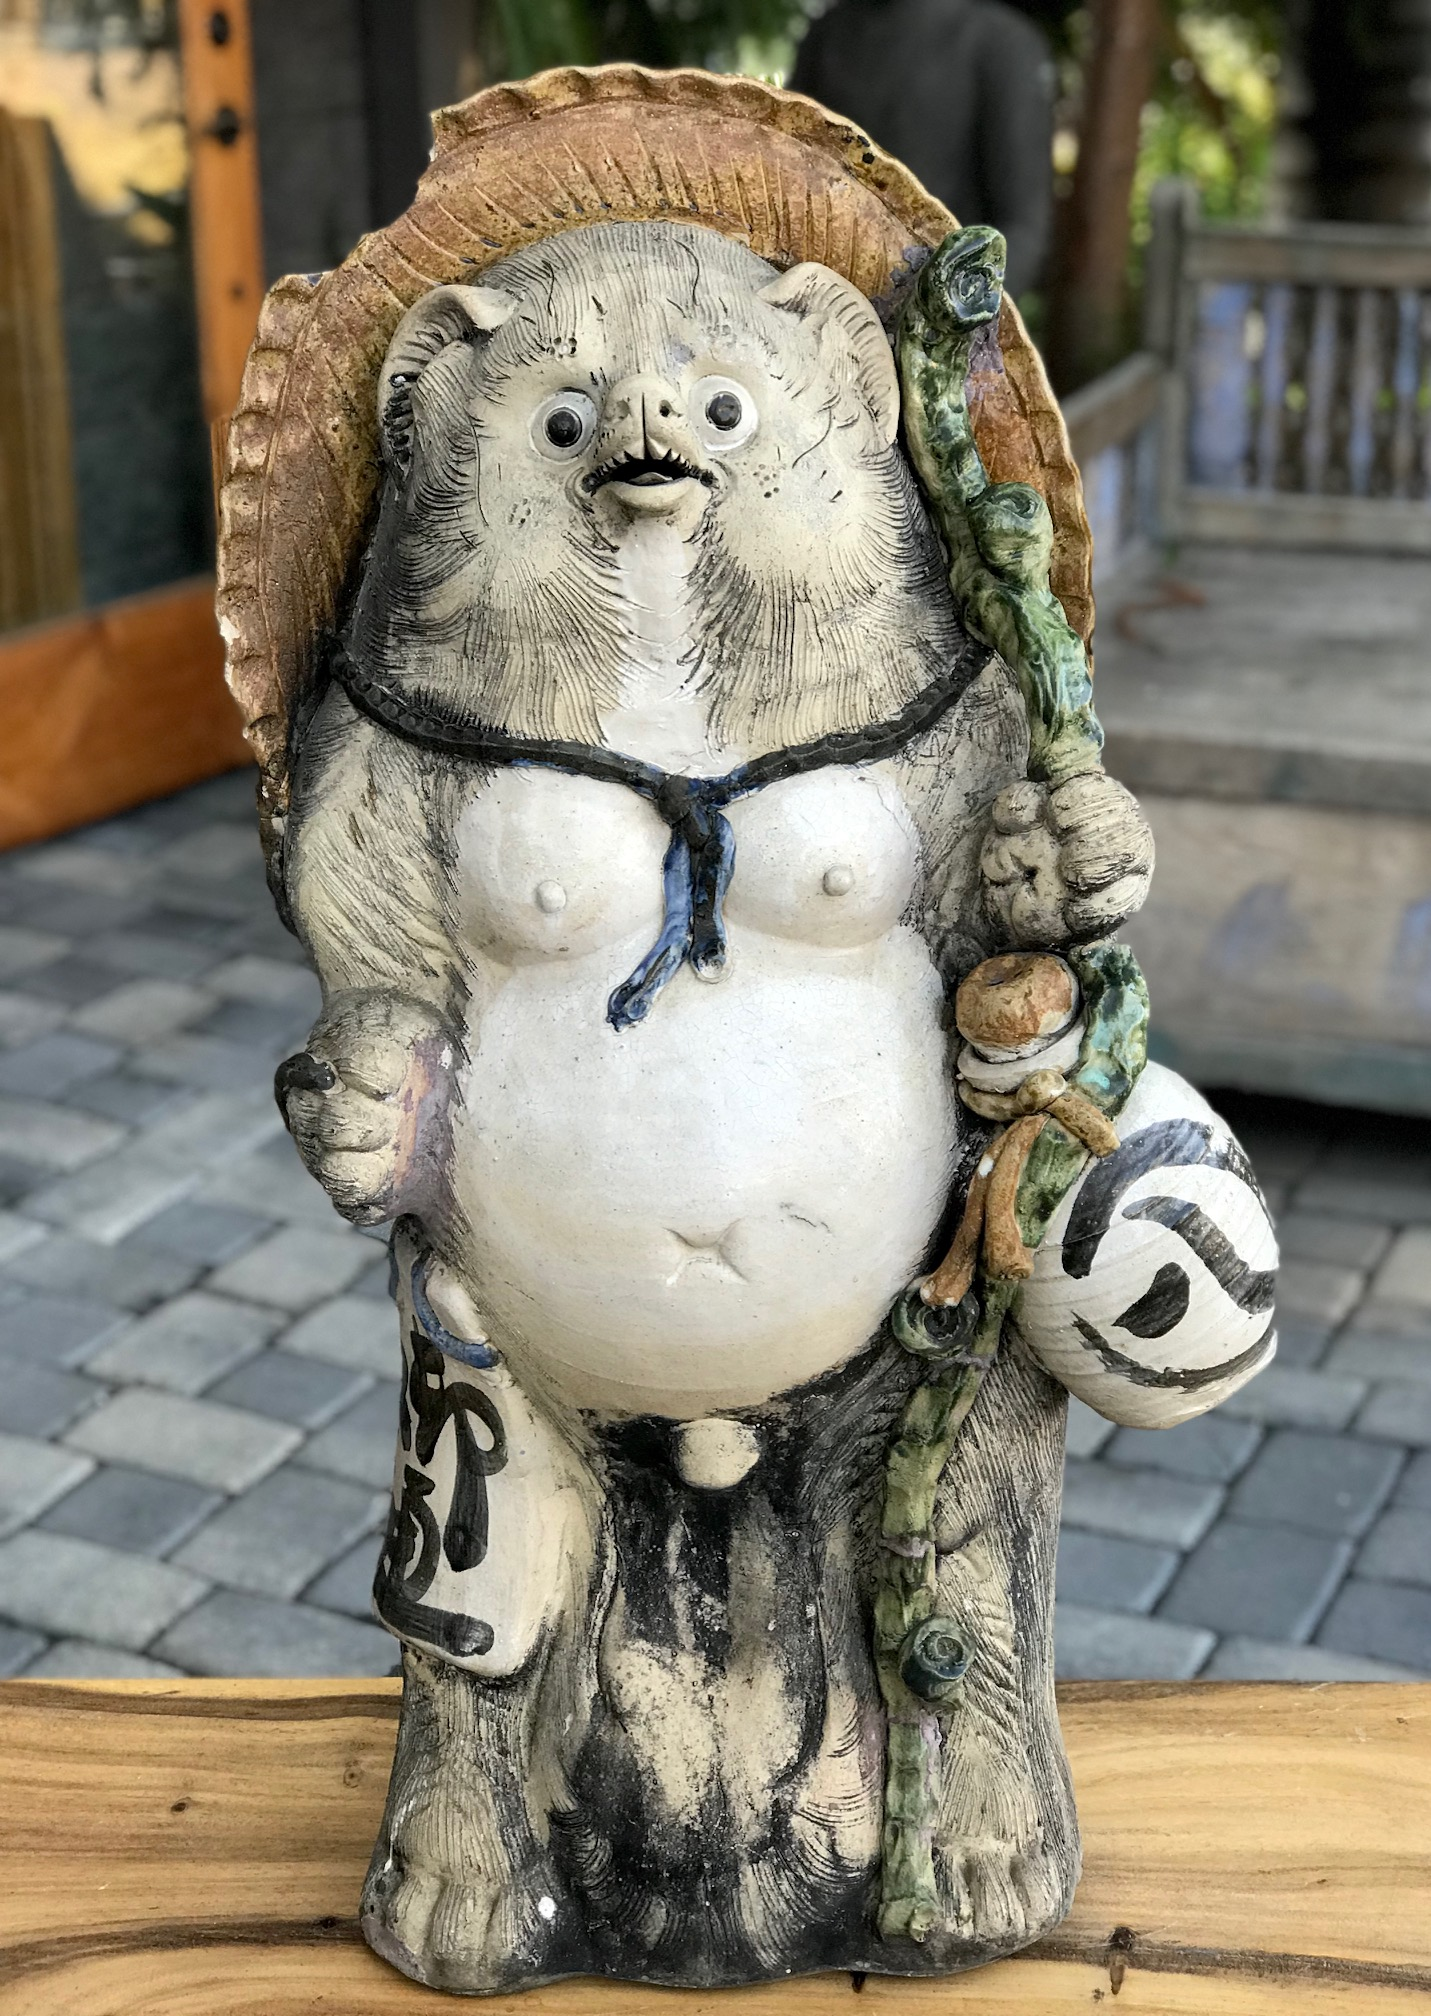 """Shigaraki Tanuki, Tanuki have a very complex and interesting folkloric history. While largely unheard of in the states, Tanuki have been among the most significant characters in Japan since ancient times. Contemporary Tanuki are primarily a welcoming symbol of prosperity. In the mid 20th century the character was adapted, both visually and symbolically, to suit modern culture and, although they retain much of their prankster persona from the original 16th century creatures, they are much more benign. They have a long list of supernatural powers, most notable shape-shifting. Ancient Tanuki, humorously portrayed in block prints are now mostly found in museums and private collections. Tanuki statues are often found in restaurant or shop windows and outside temples. Famous for getting drunk and not paying their bills, they are usually portrayed wearing a straw hat and carrying a flask of sake and a ledger of promissory notes. Thus they can also serve as cautionary figures against the hazards of overindulging in alcohol. They always have big bellies and humorously large testicles which they use as drums. 37"""" x 19"""" x 16"""", $950., (chip in hat) thedavidalancollection.com , solana beach, ca"""